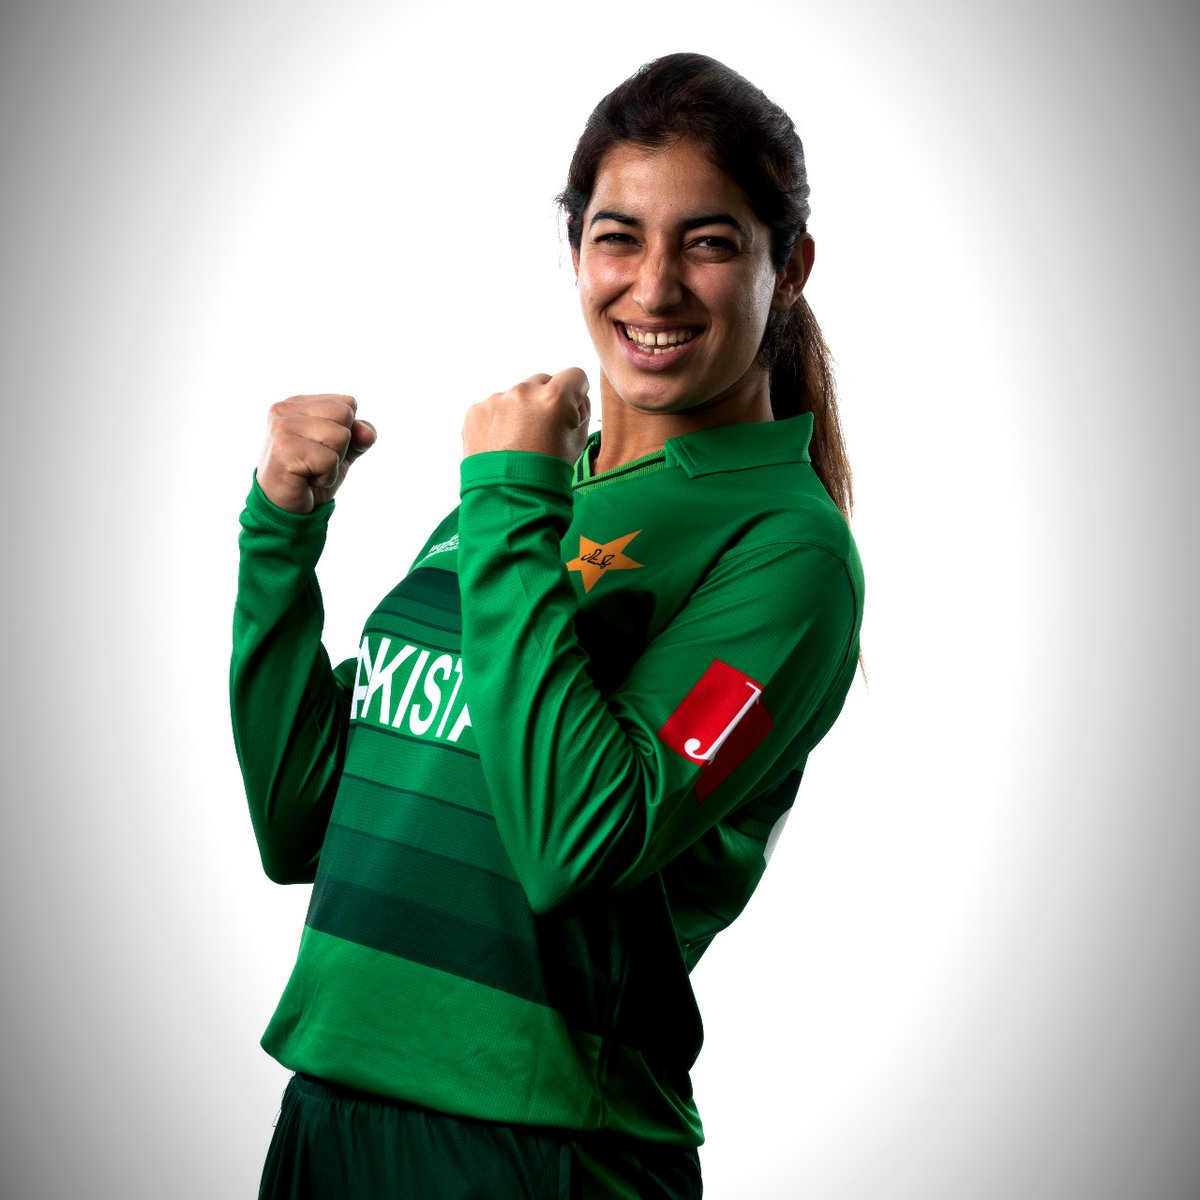 🏏 33 ODIs and 48 T20Is 🙌 1133 international runs and 24 wickets 💪 Most wickets for Pakistan in 2018 Women's T20WC  Happy birthday to @aliya_riaz37! https://t.co/CbUvGD2aVu